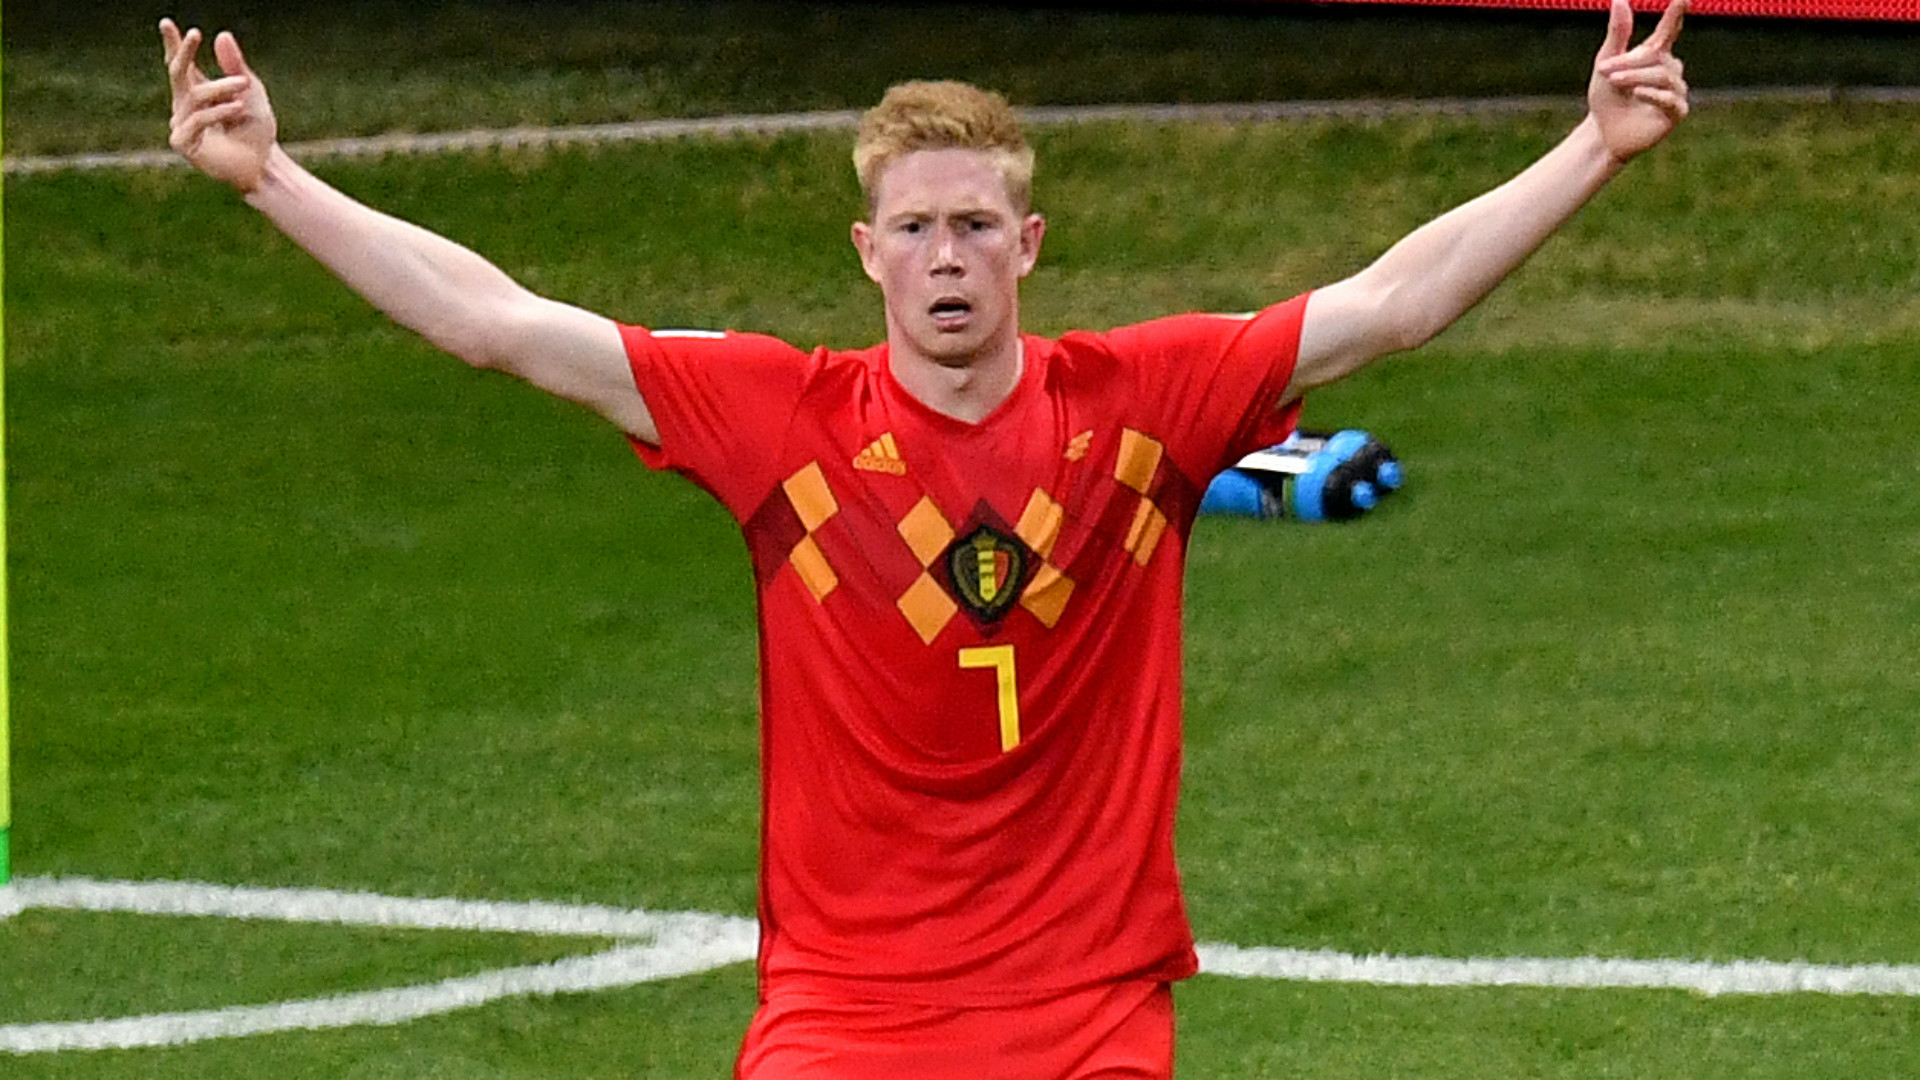 Brazil Knocked Out: Dazzling De Bruyne And Belgium Shock